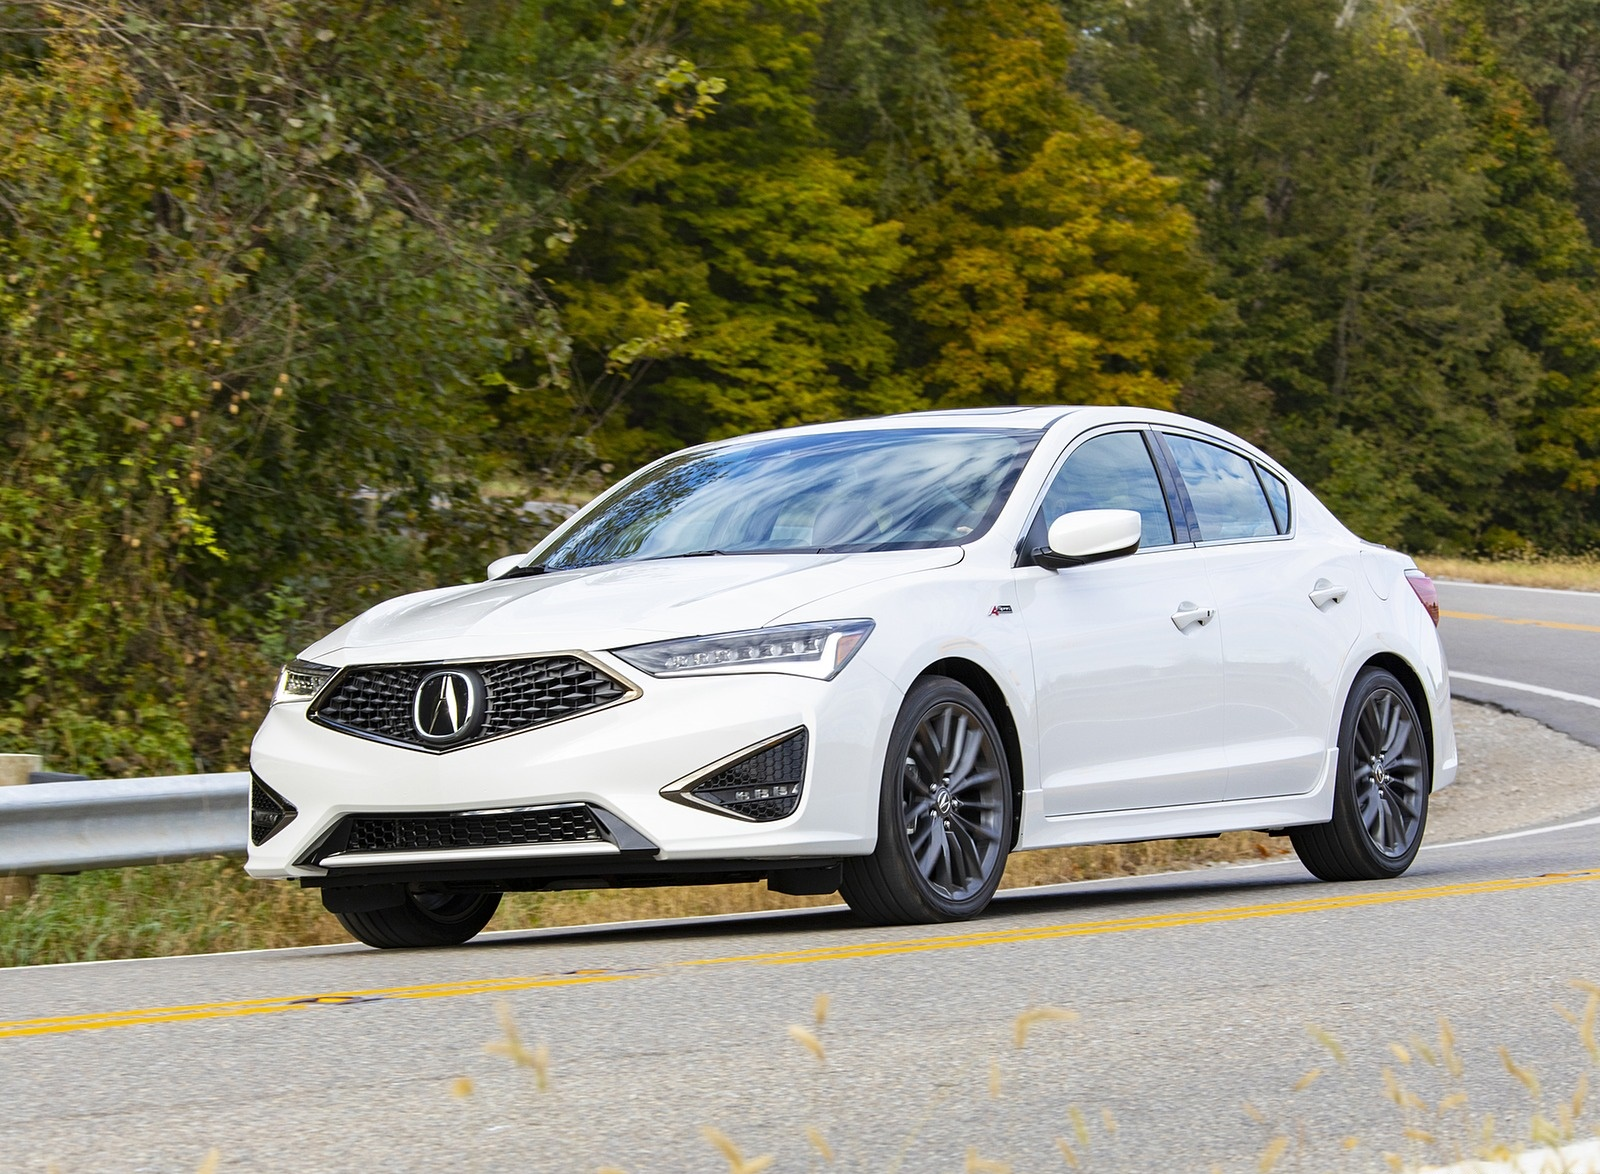 2020 Acura ILX A-Spec Front Three-Quarter Wallpapers (5)